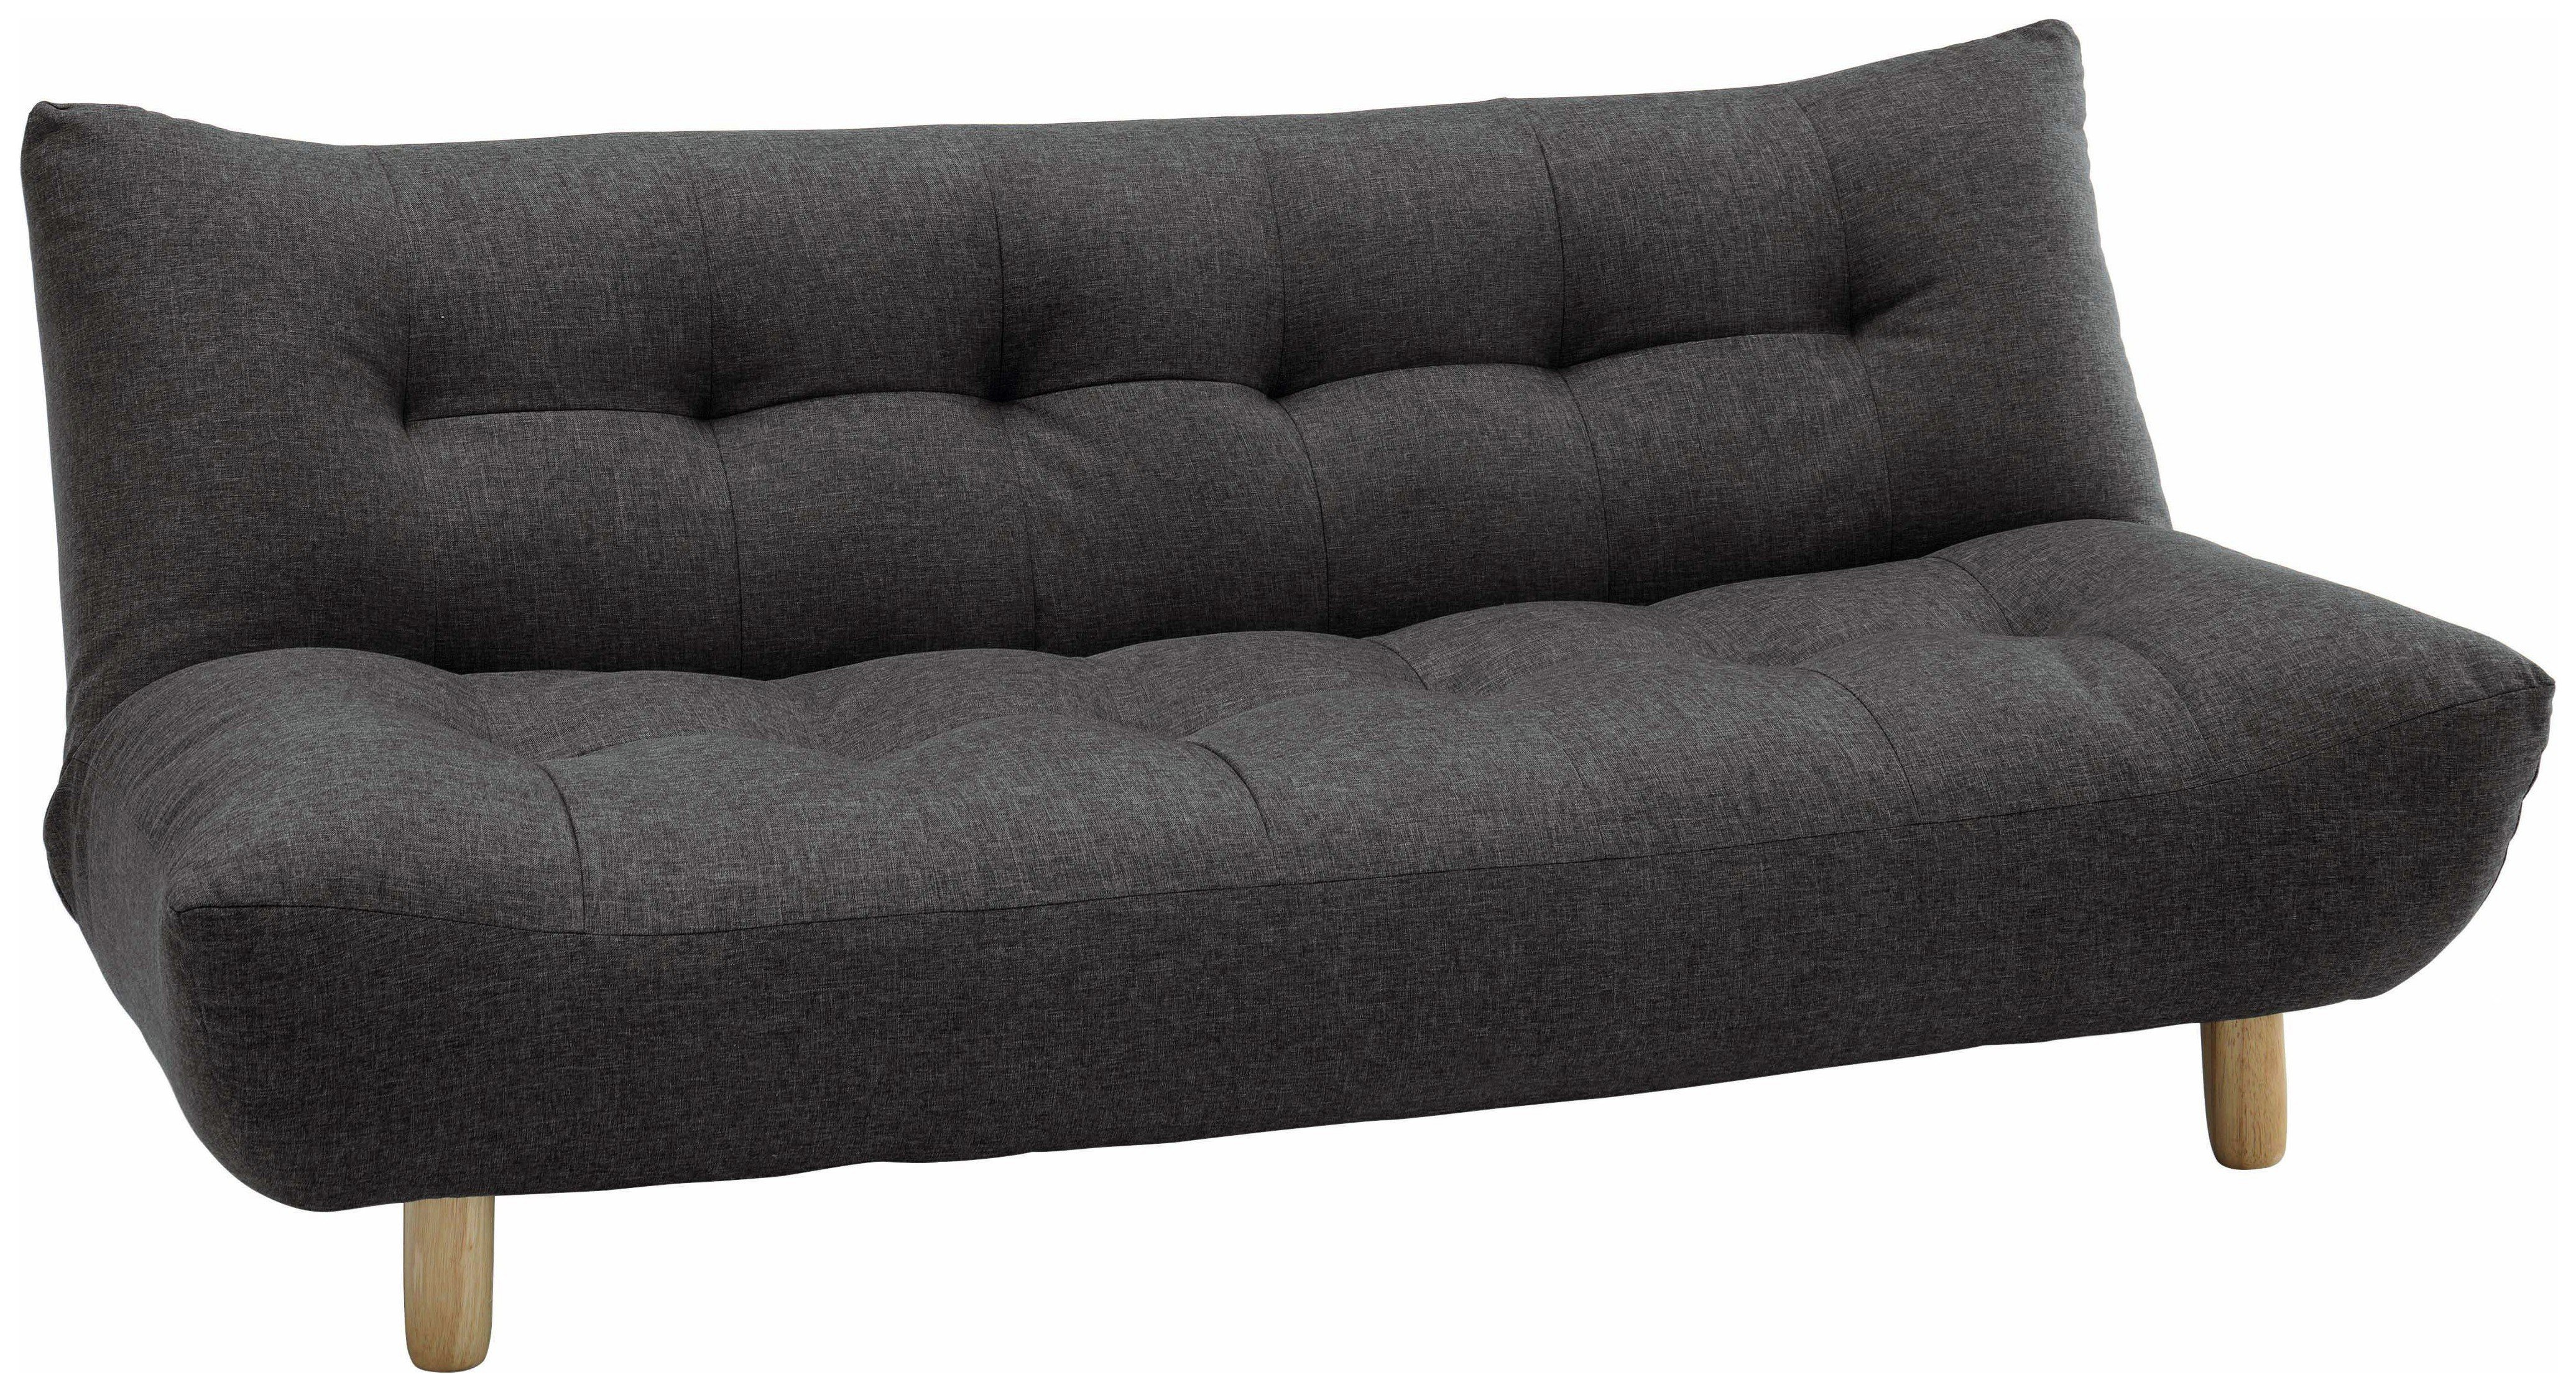 fold out chair bed argos velvet covers for sale buy habitat kota 3 seater fabric sofa charcoal beds